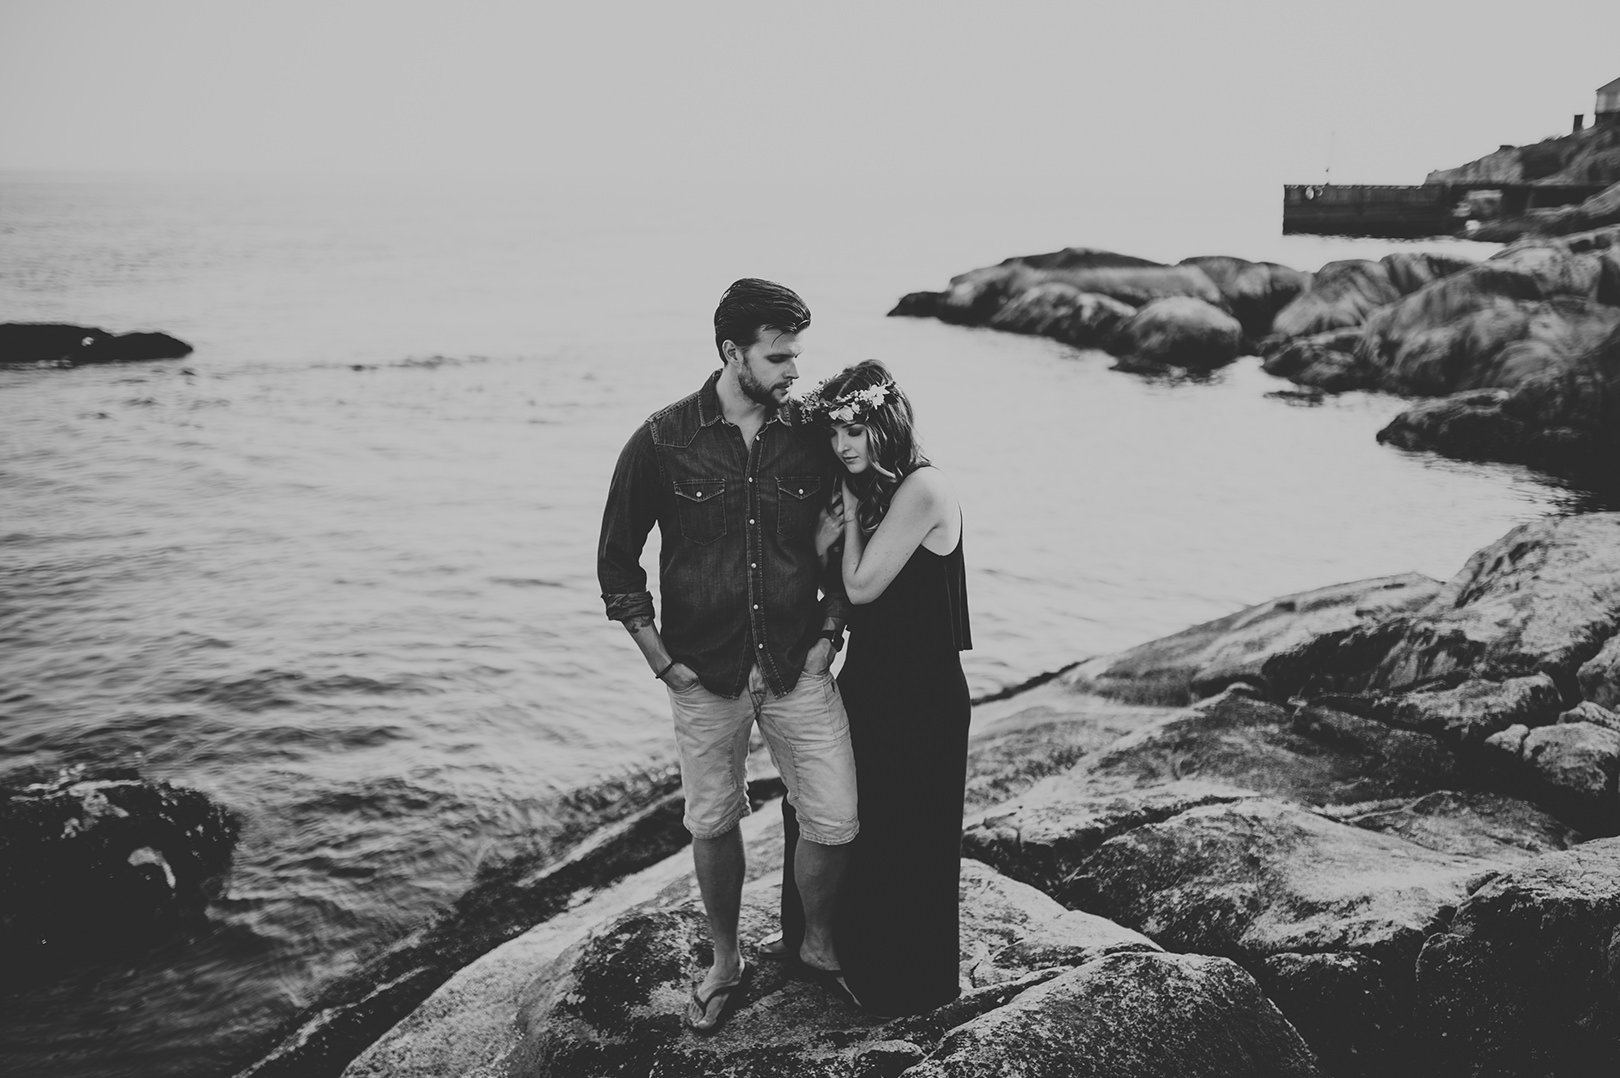 unique locations for an engagement session near Vancouver